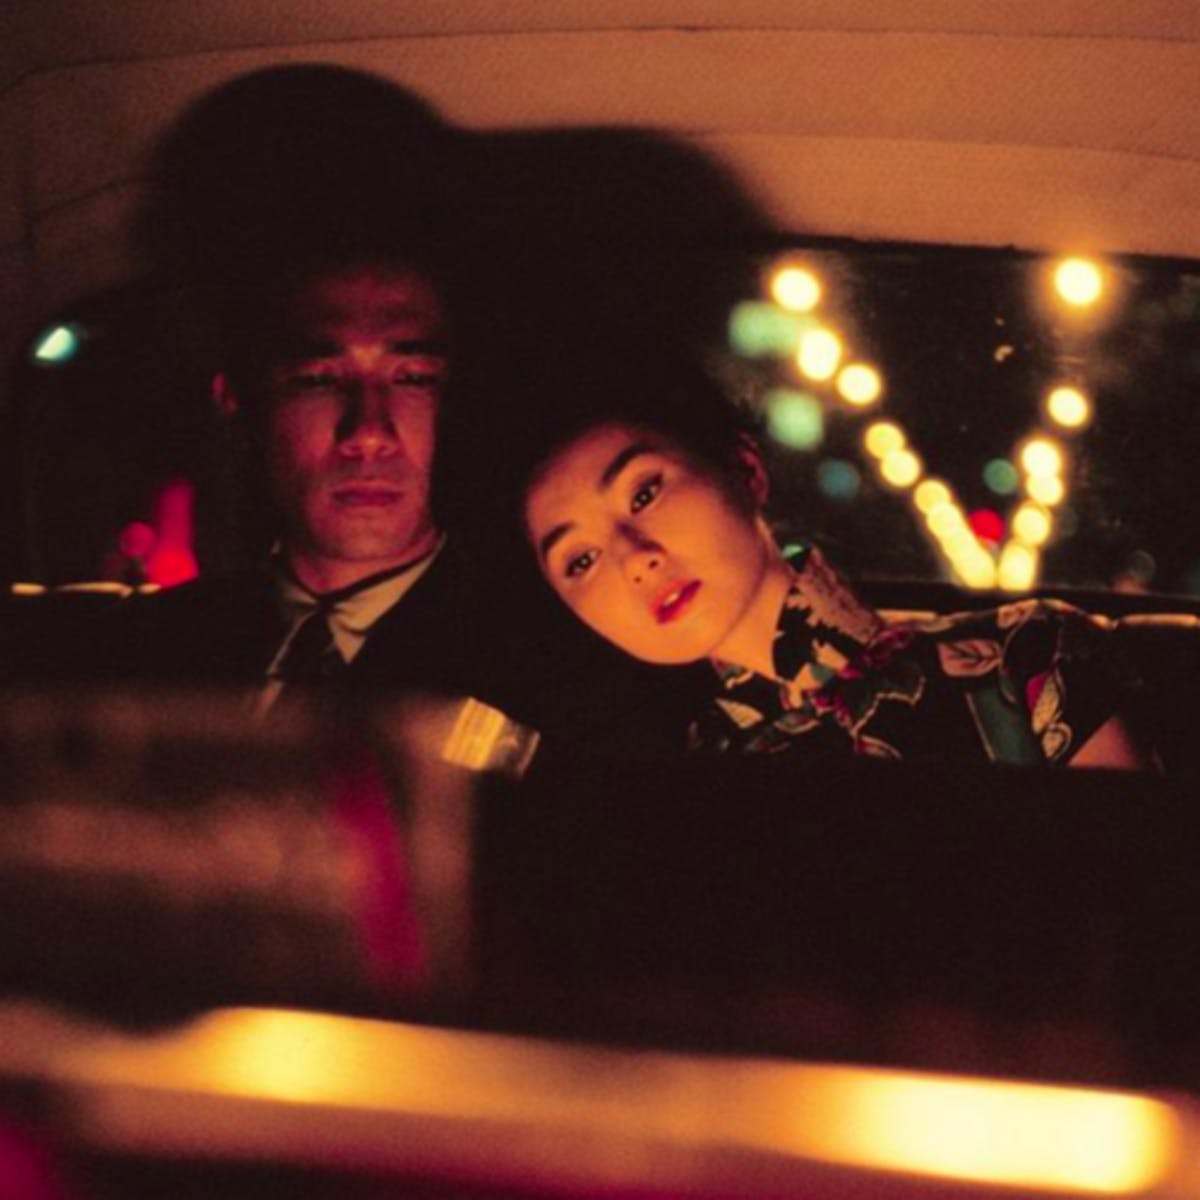 A couple sitting in a car